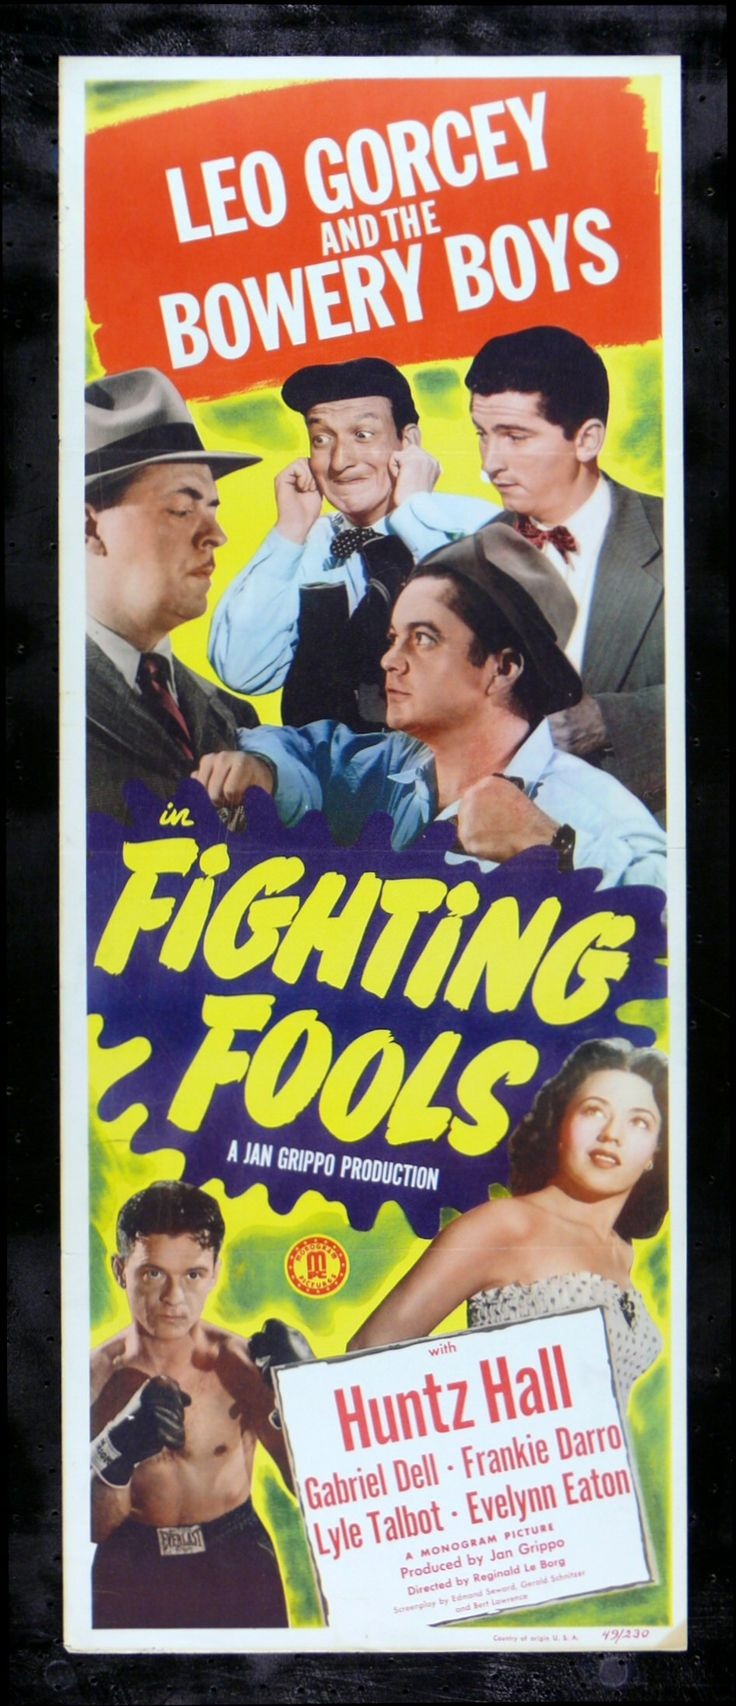 FIGHTING FOOLS (1949) - Leo Gorcey & The Bowery Boys - Huntz Hall - Frankie Darro - Gabriel Dell - Lyle Talbot - Directed by William Beaudine - Monogram Pictures - Insert movie poster.